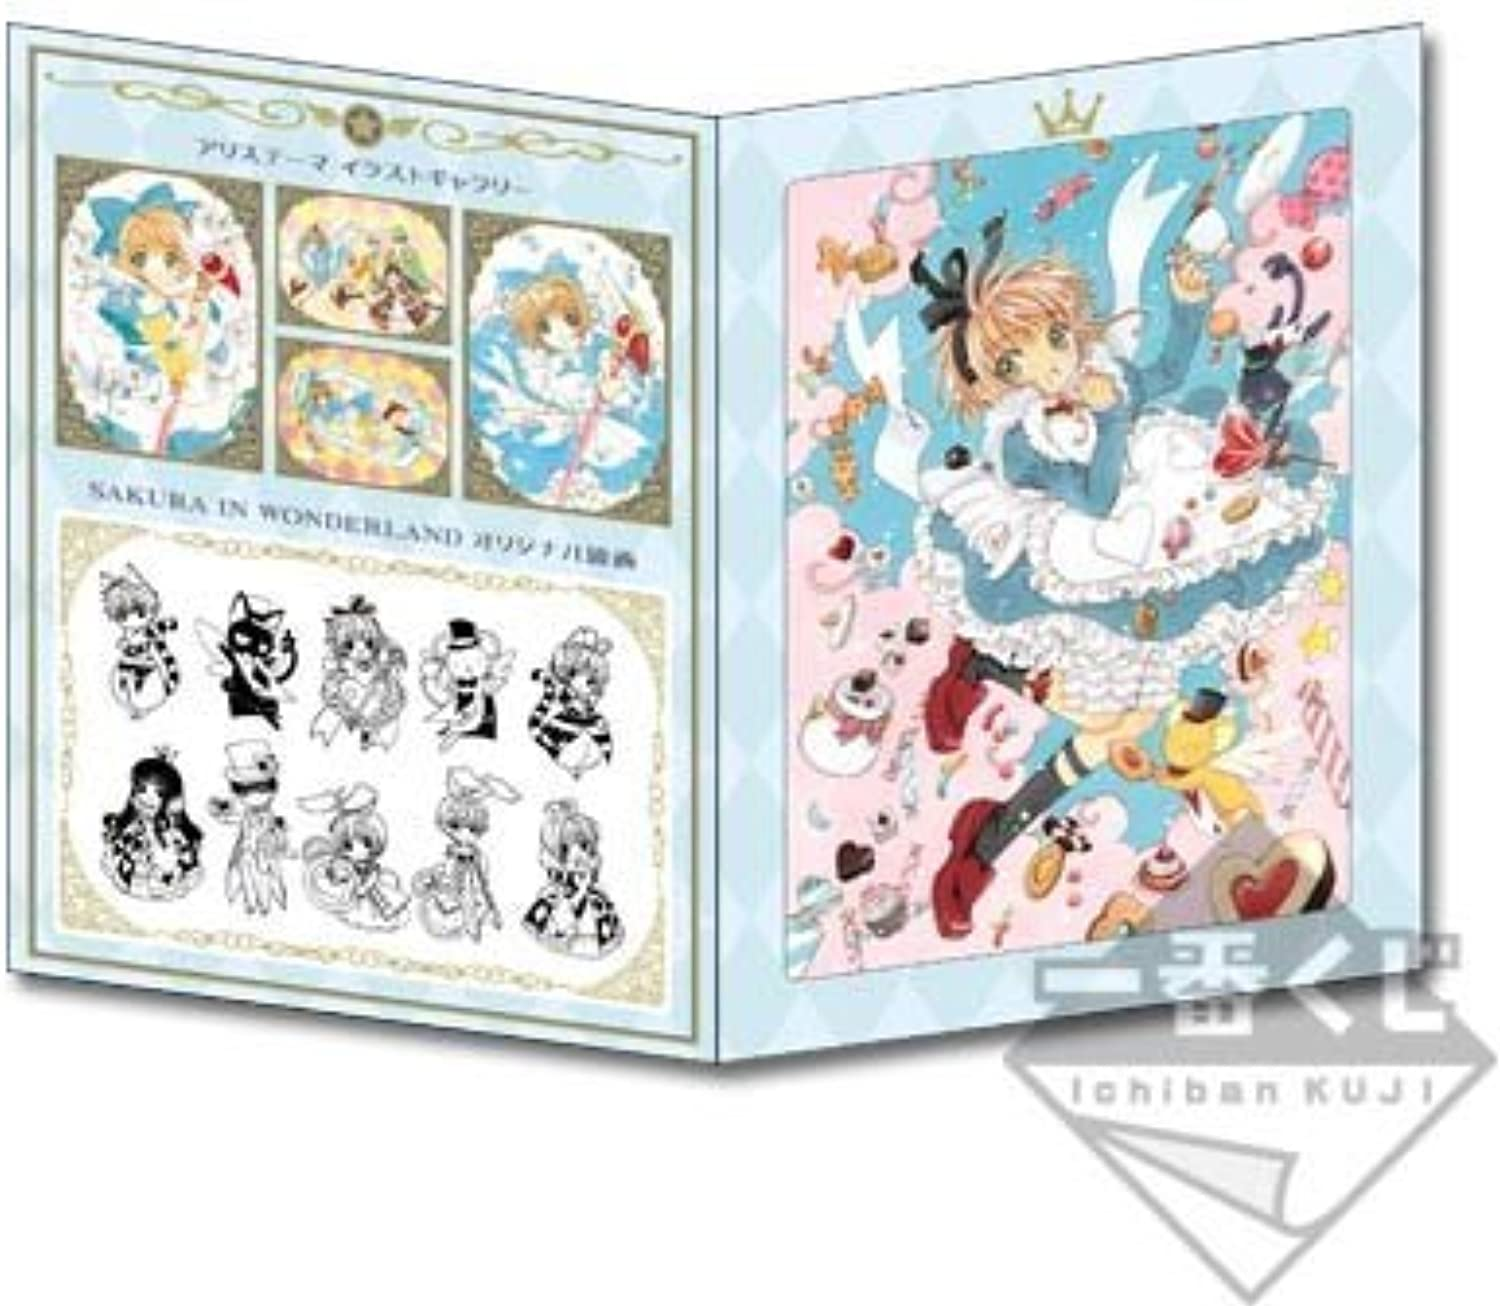 The most lottery card Captor Sakura  SAKURA IN WONDERLAND  last one prize draw grated Shi illustrations holder